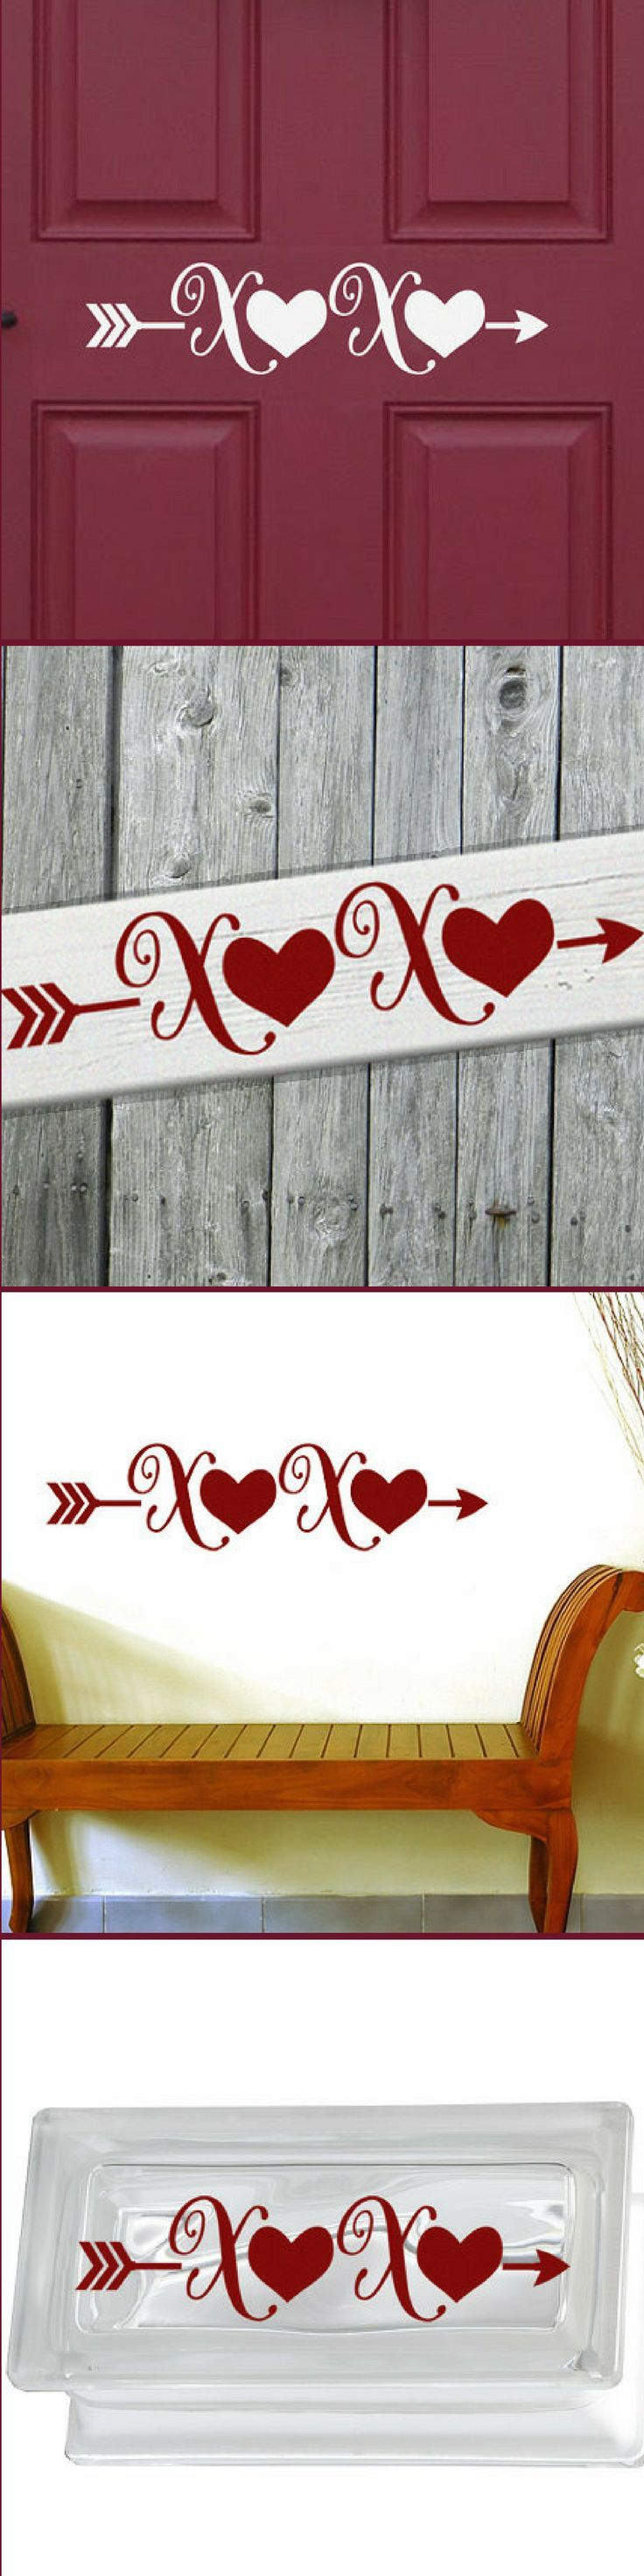 Dress up your door with this Kisses and Hugs XOXO Happy Valentines Day Arrow Decal that can also fit perfectly in a variety of home decor themes. Use on wall, wood sign, shadow box, canvas, plate, tile, glass window, glass block, or any number of other projects this holiday season! #ValentinesFrontDoorDecal #ValentinesDayDecor #Arrow #affiliate #XOXO #KissesandHugs #ValentineSticker #ClassroomDecorations #ValentinesDay #VinylDecal #homedecor #hometour #farmhouse #valentinesday…